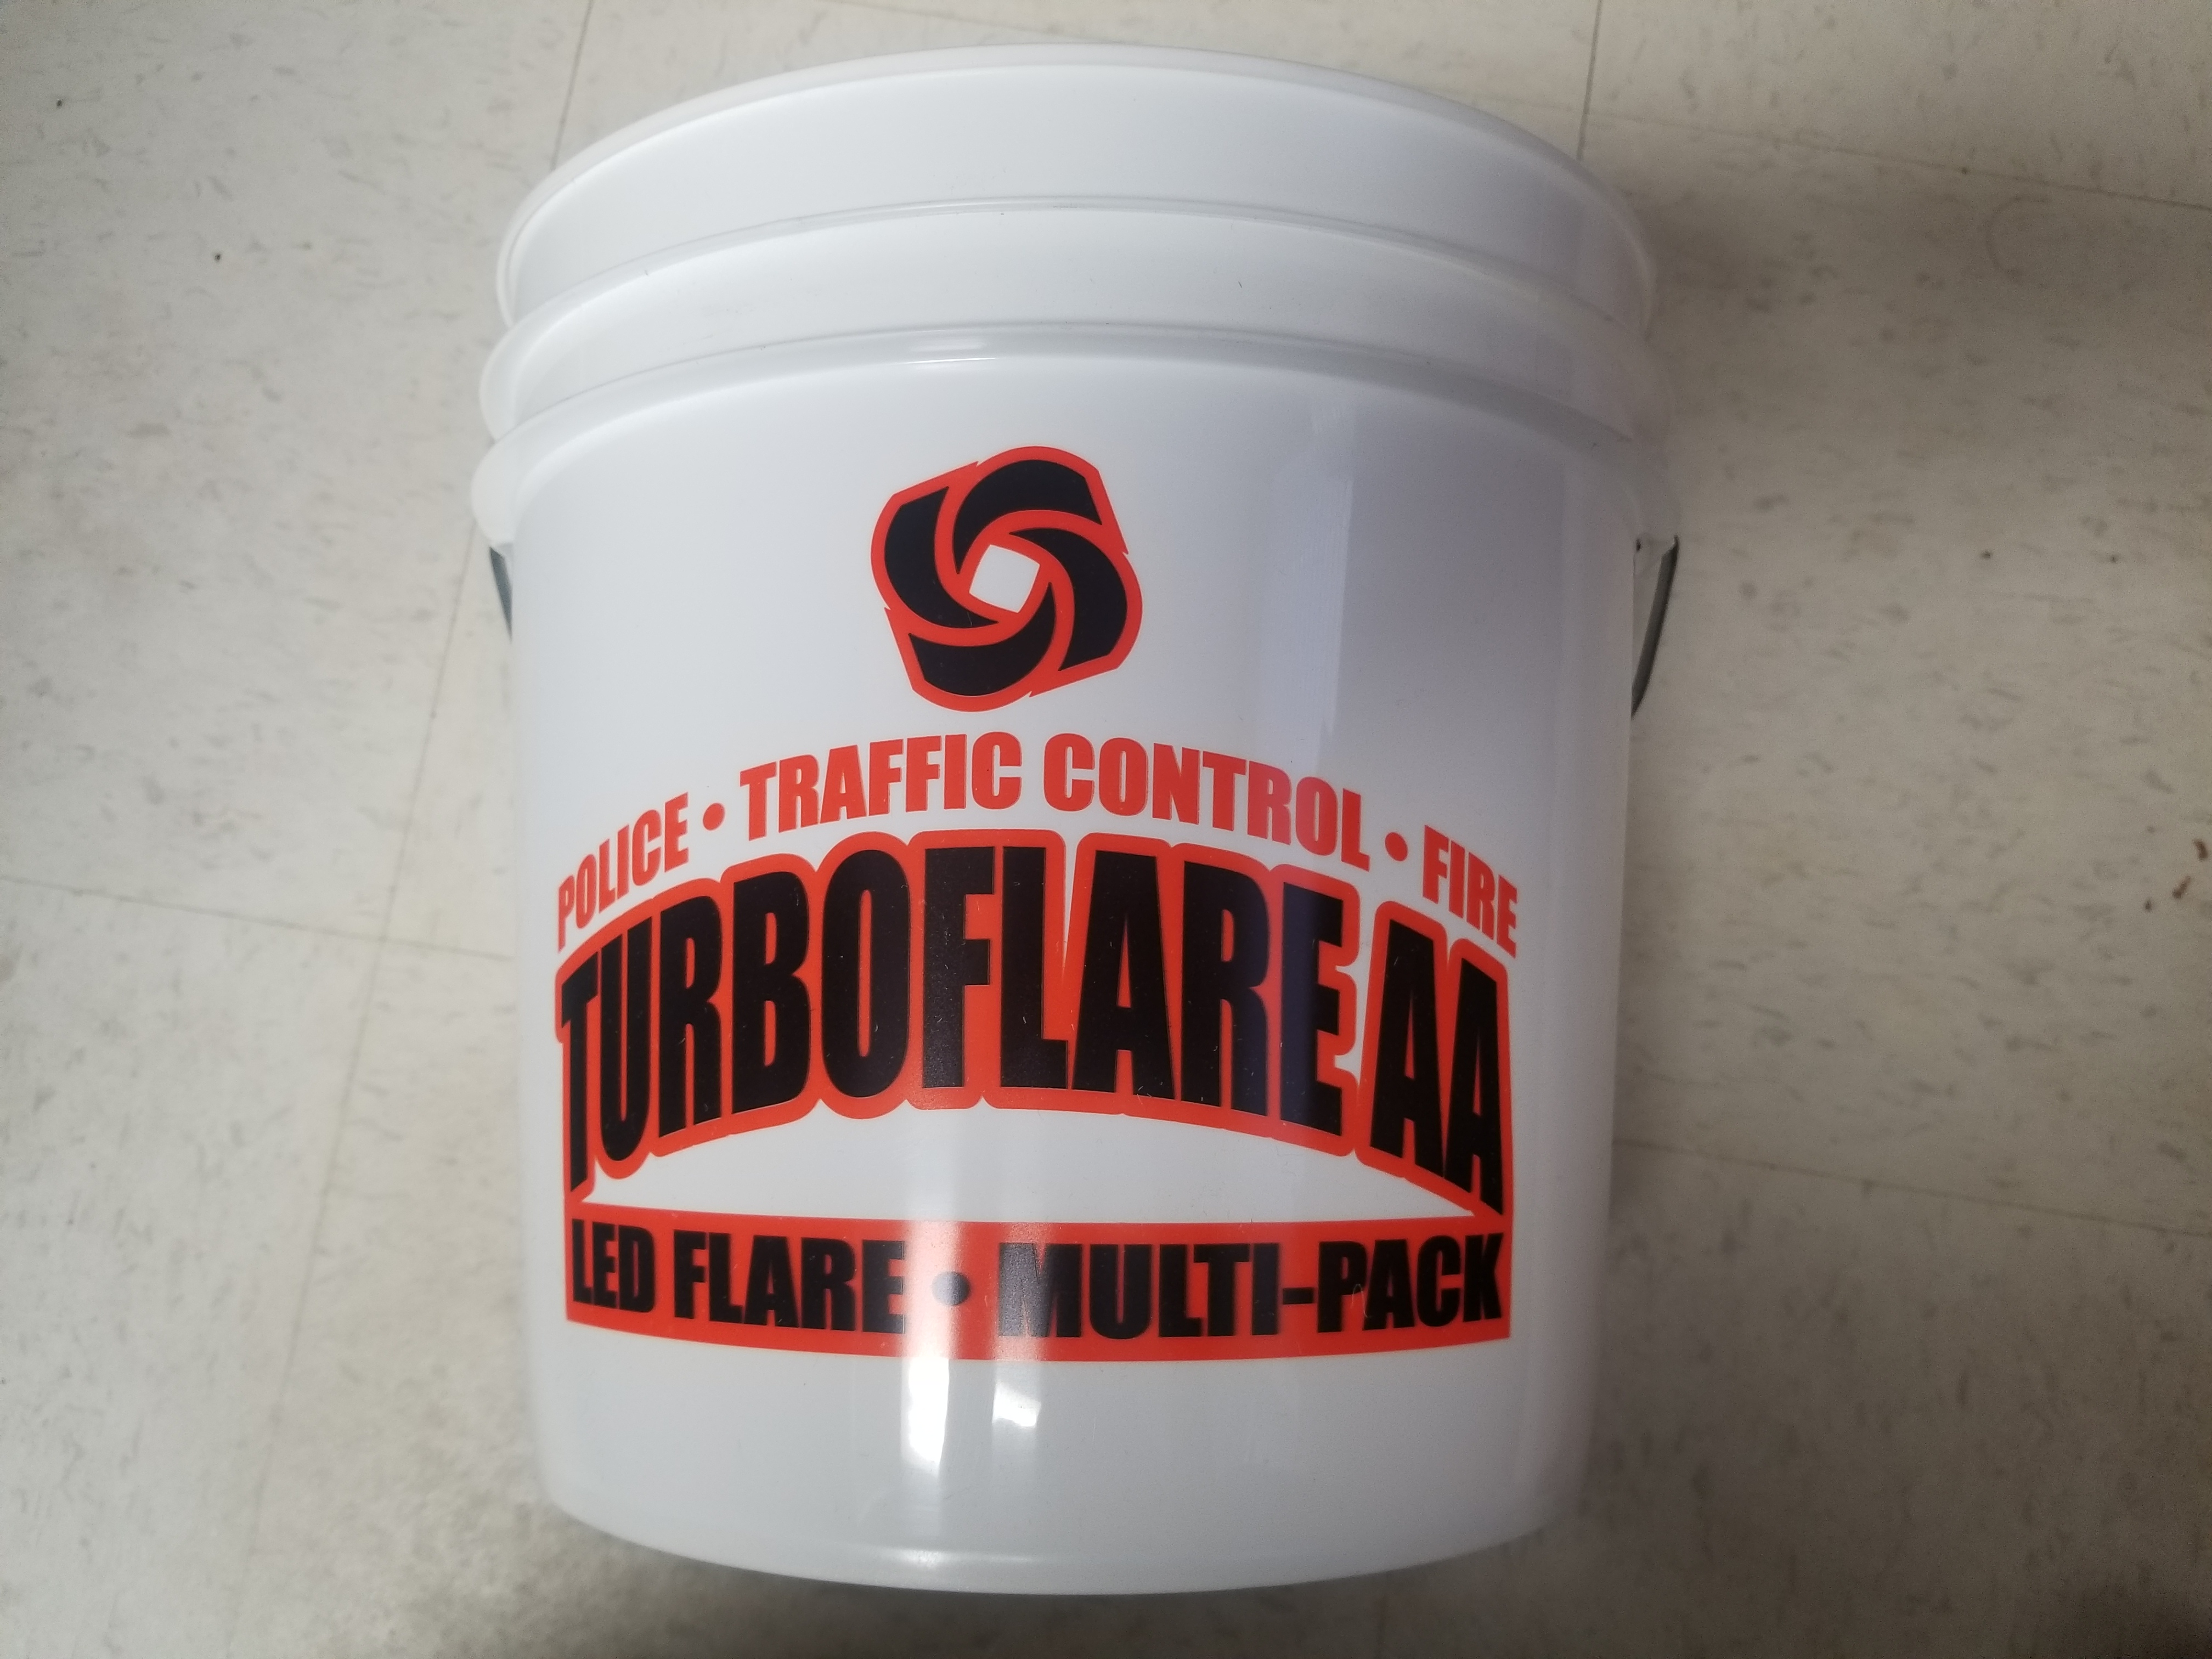 TURBOFLARE AA  Pail Red